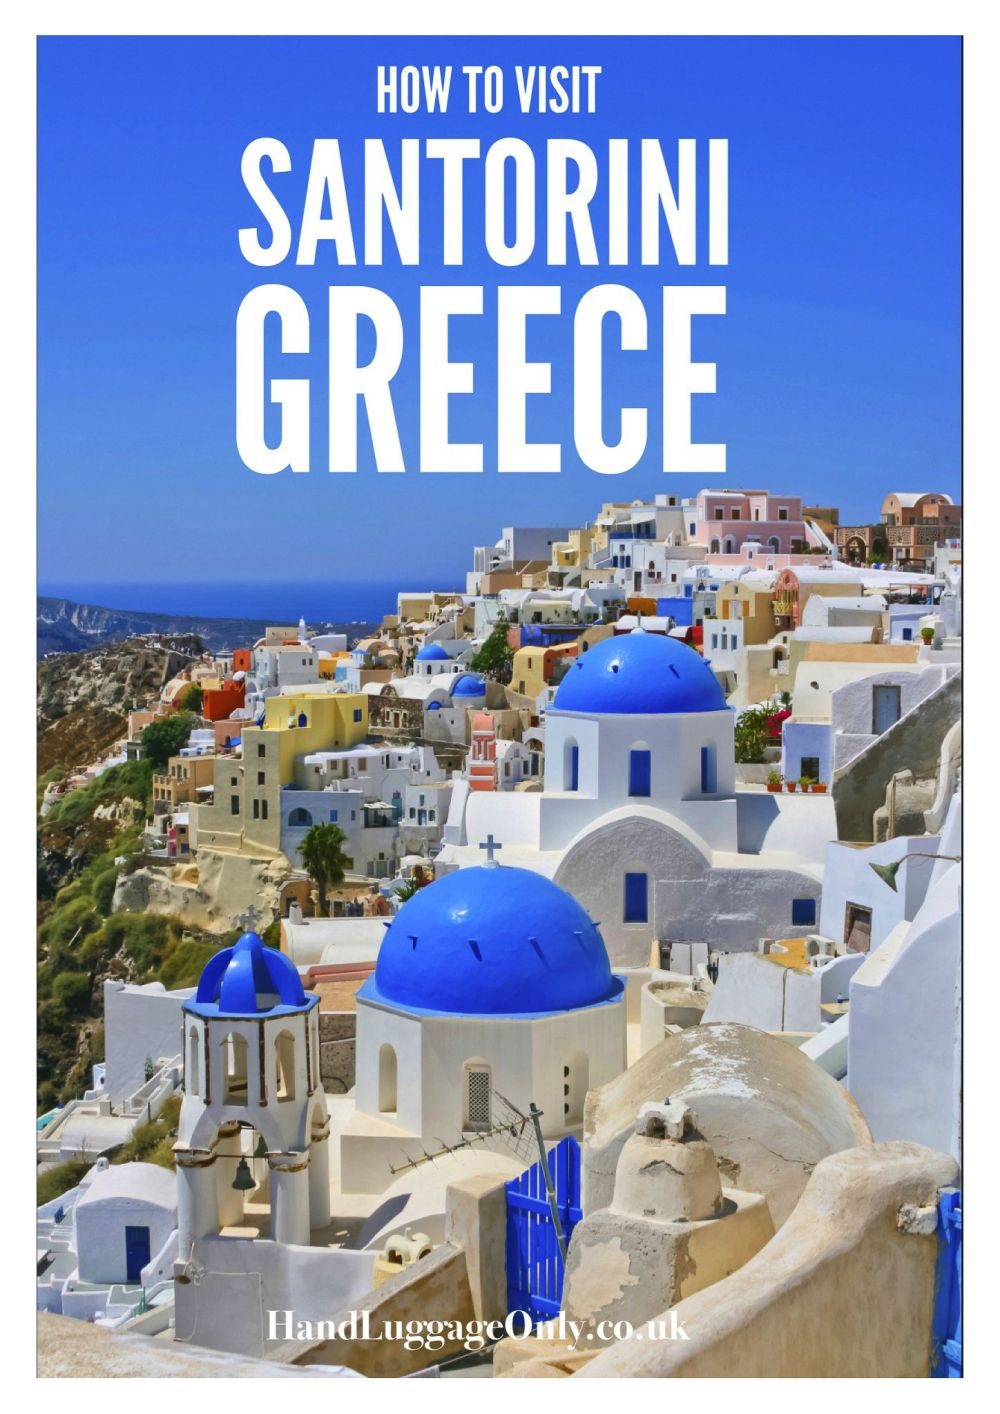 A Journey To The Real Atlantis - Santorini In Greece (16)